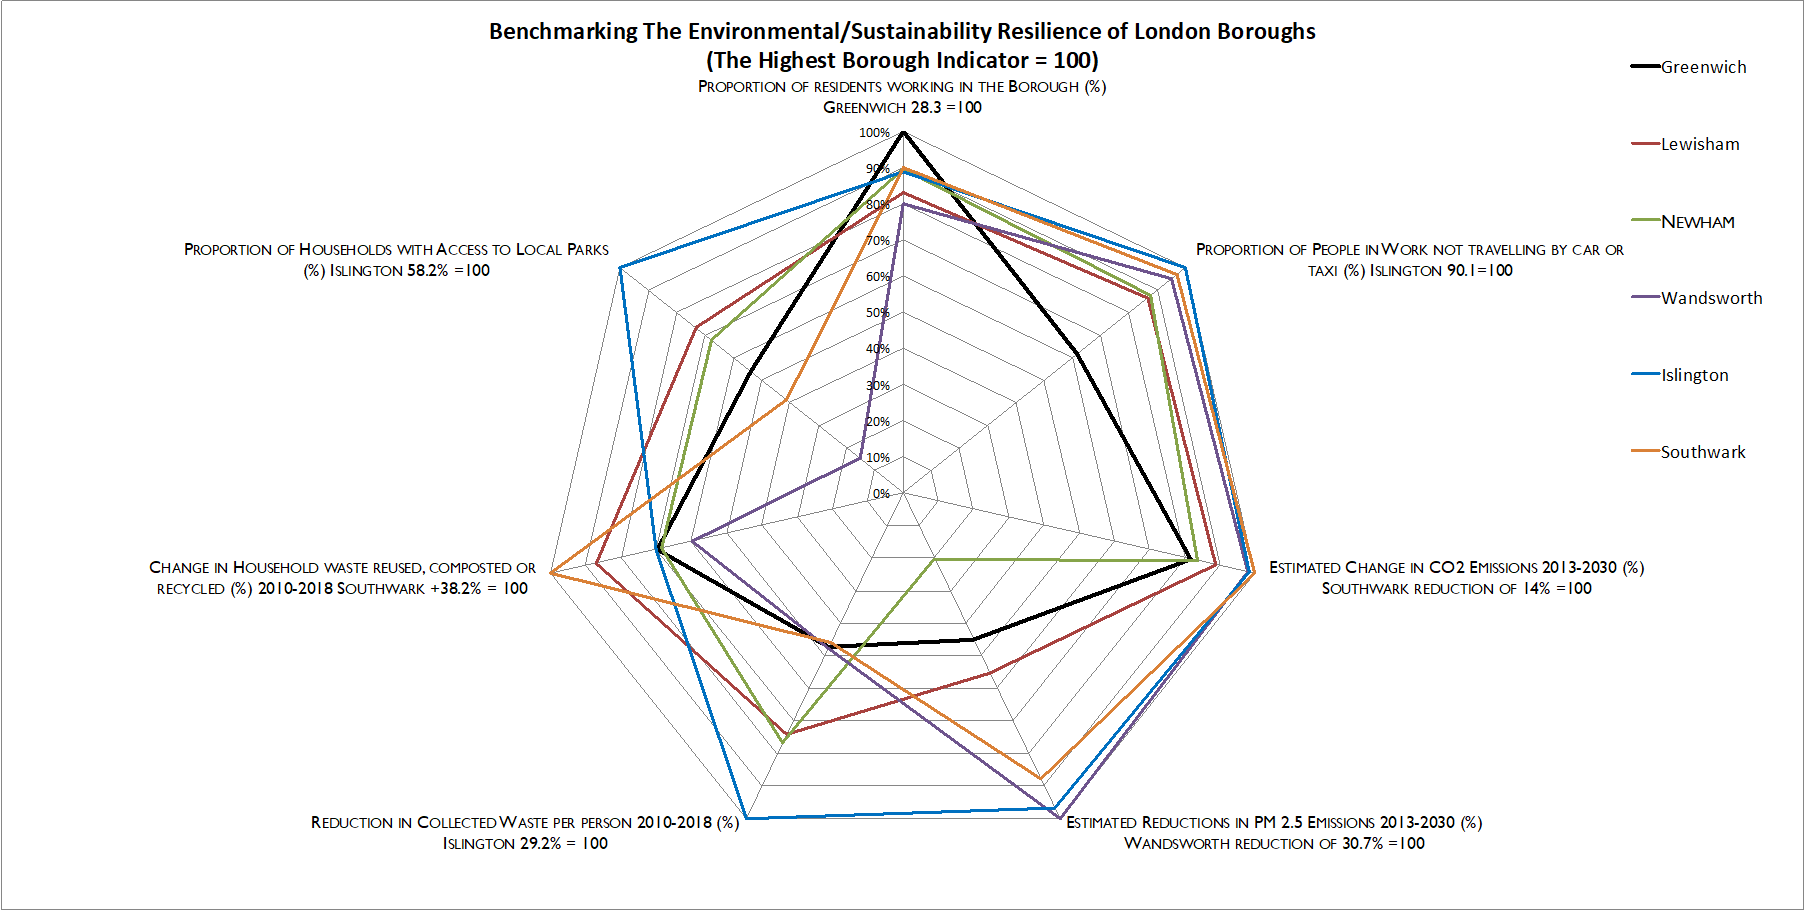 Figure 2: Environmental and sustainability resilience